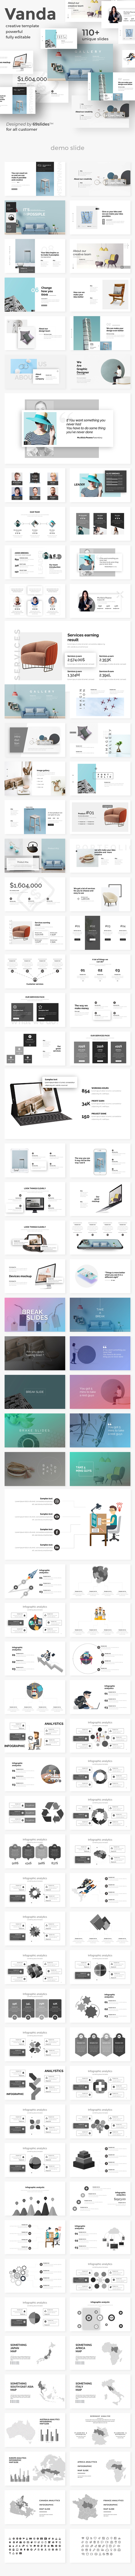 Vanda Creative Keynote Template - Creative Keynote Templates